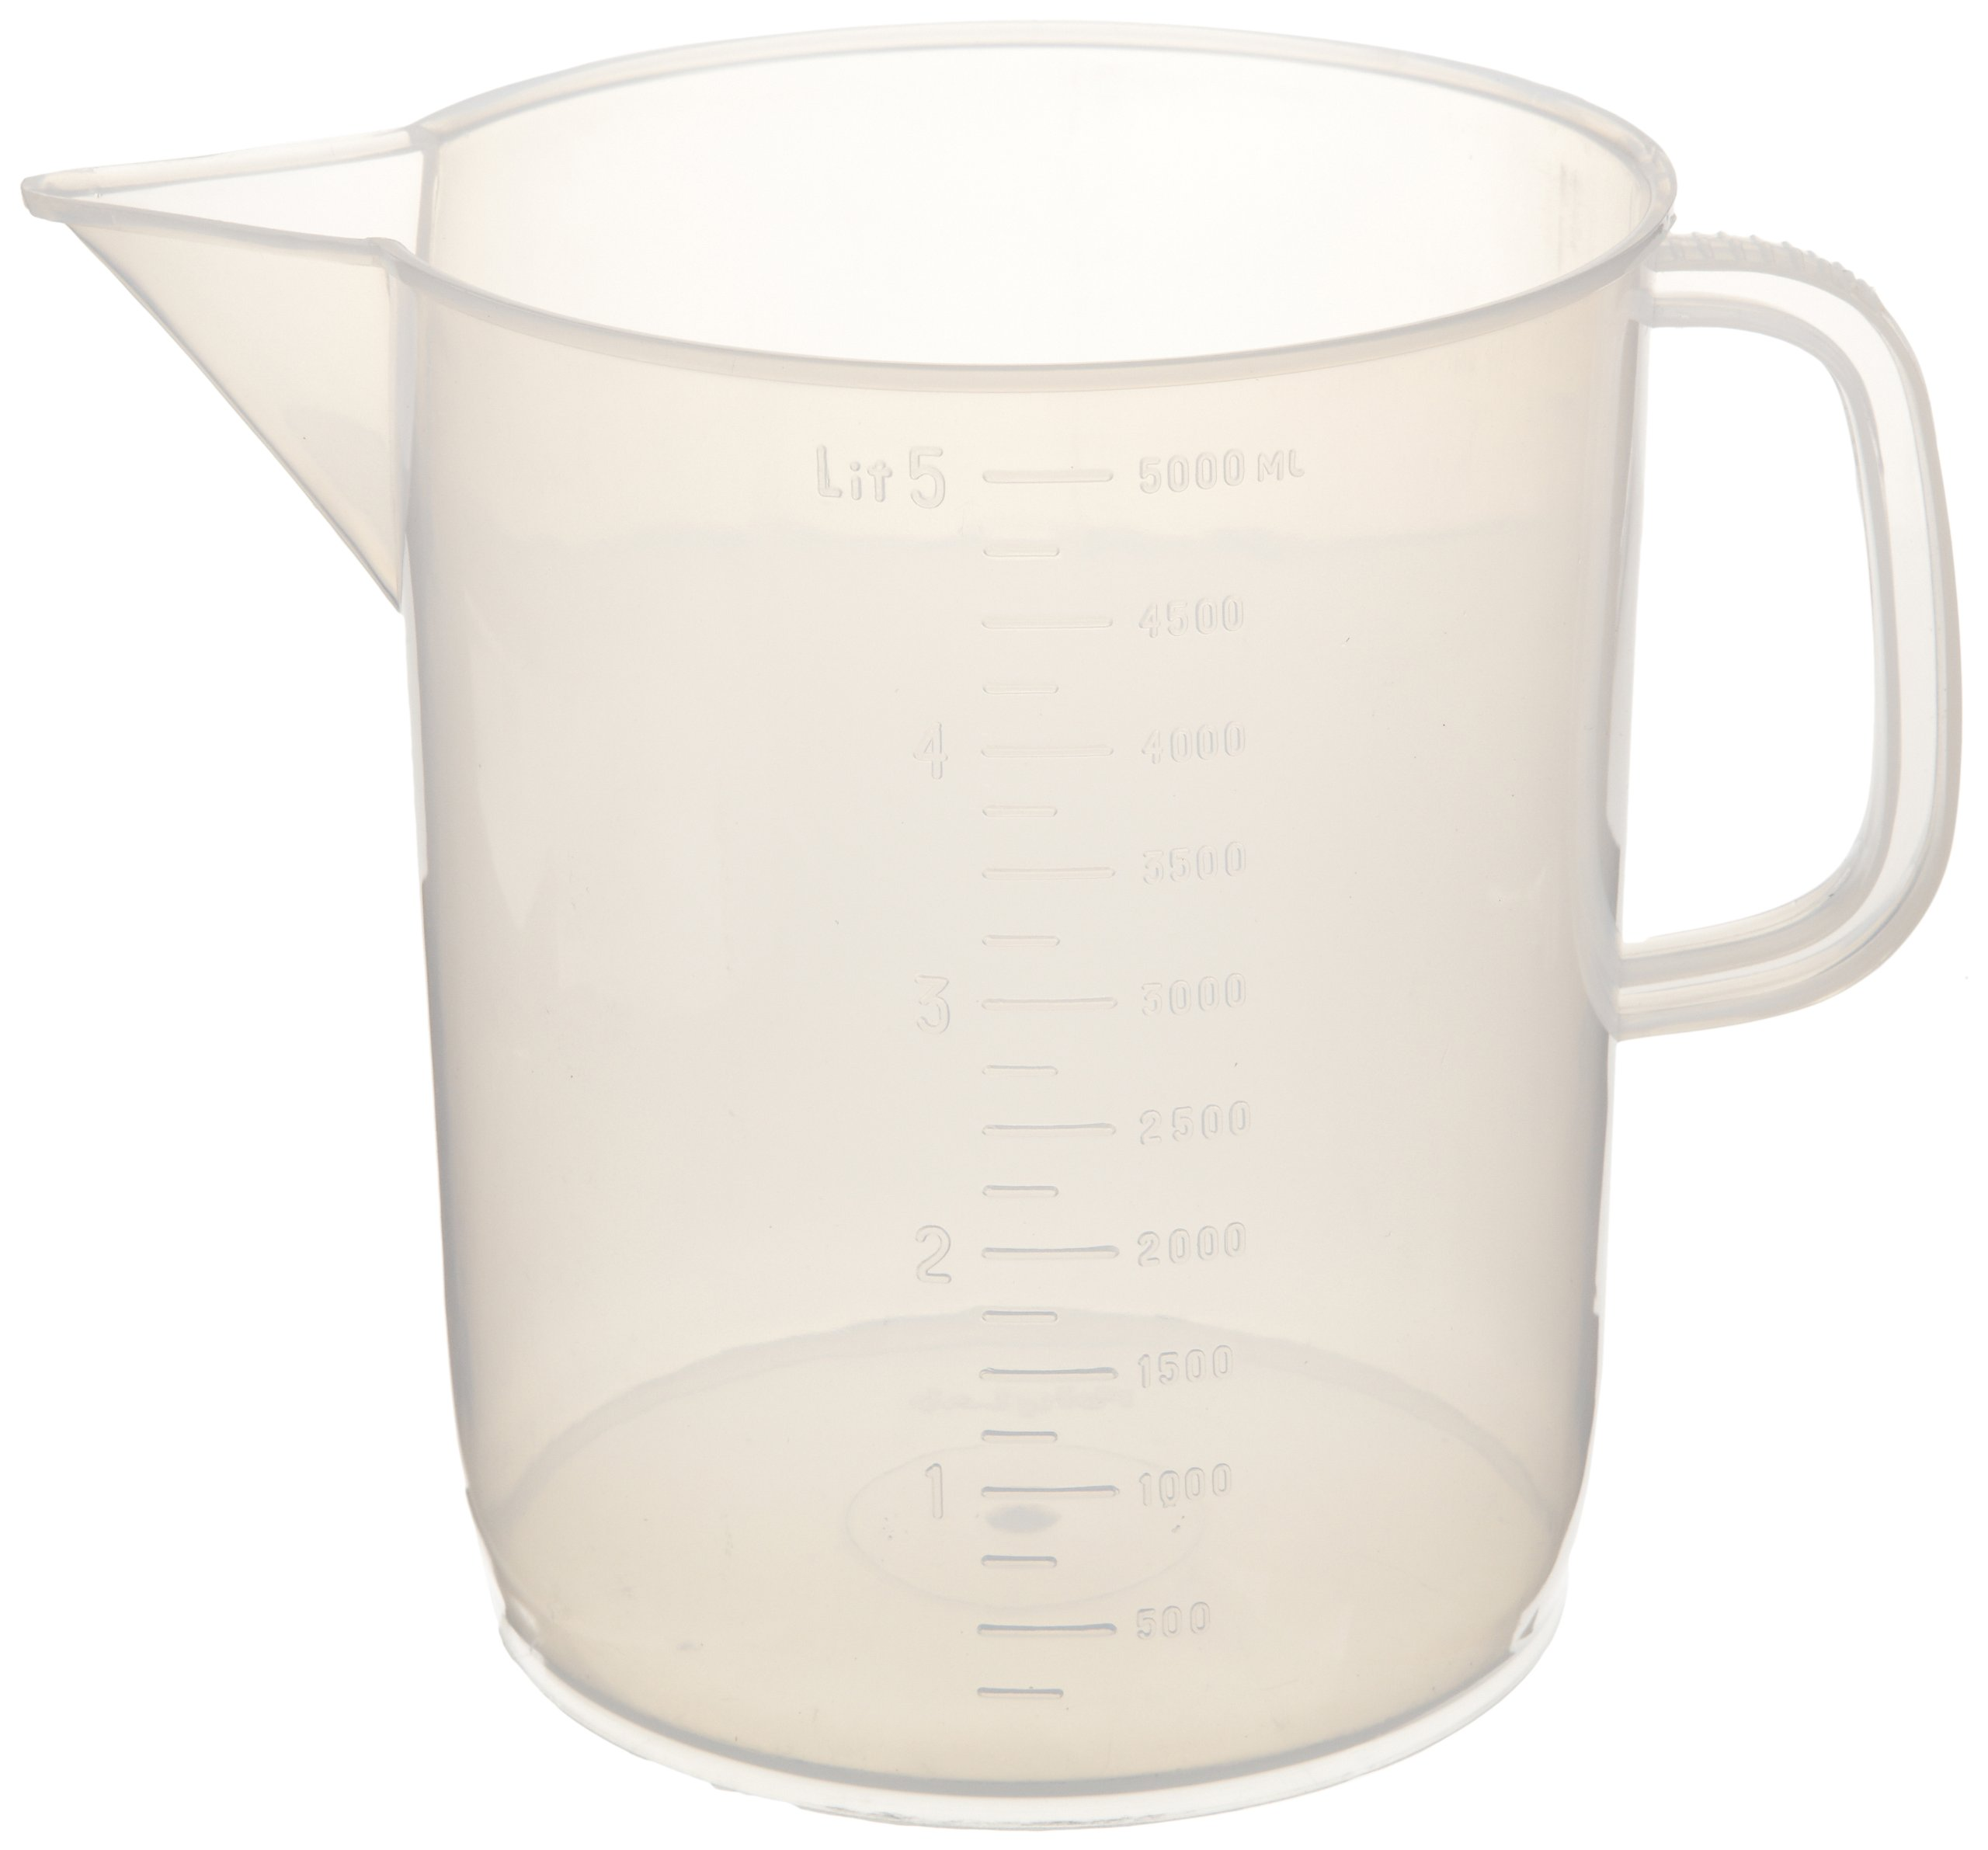 United Scientific 81105 Polypropylene Short Form Pitchers, 5000ml Capacity by United Scientific Supplies